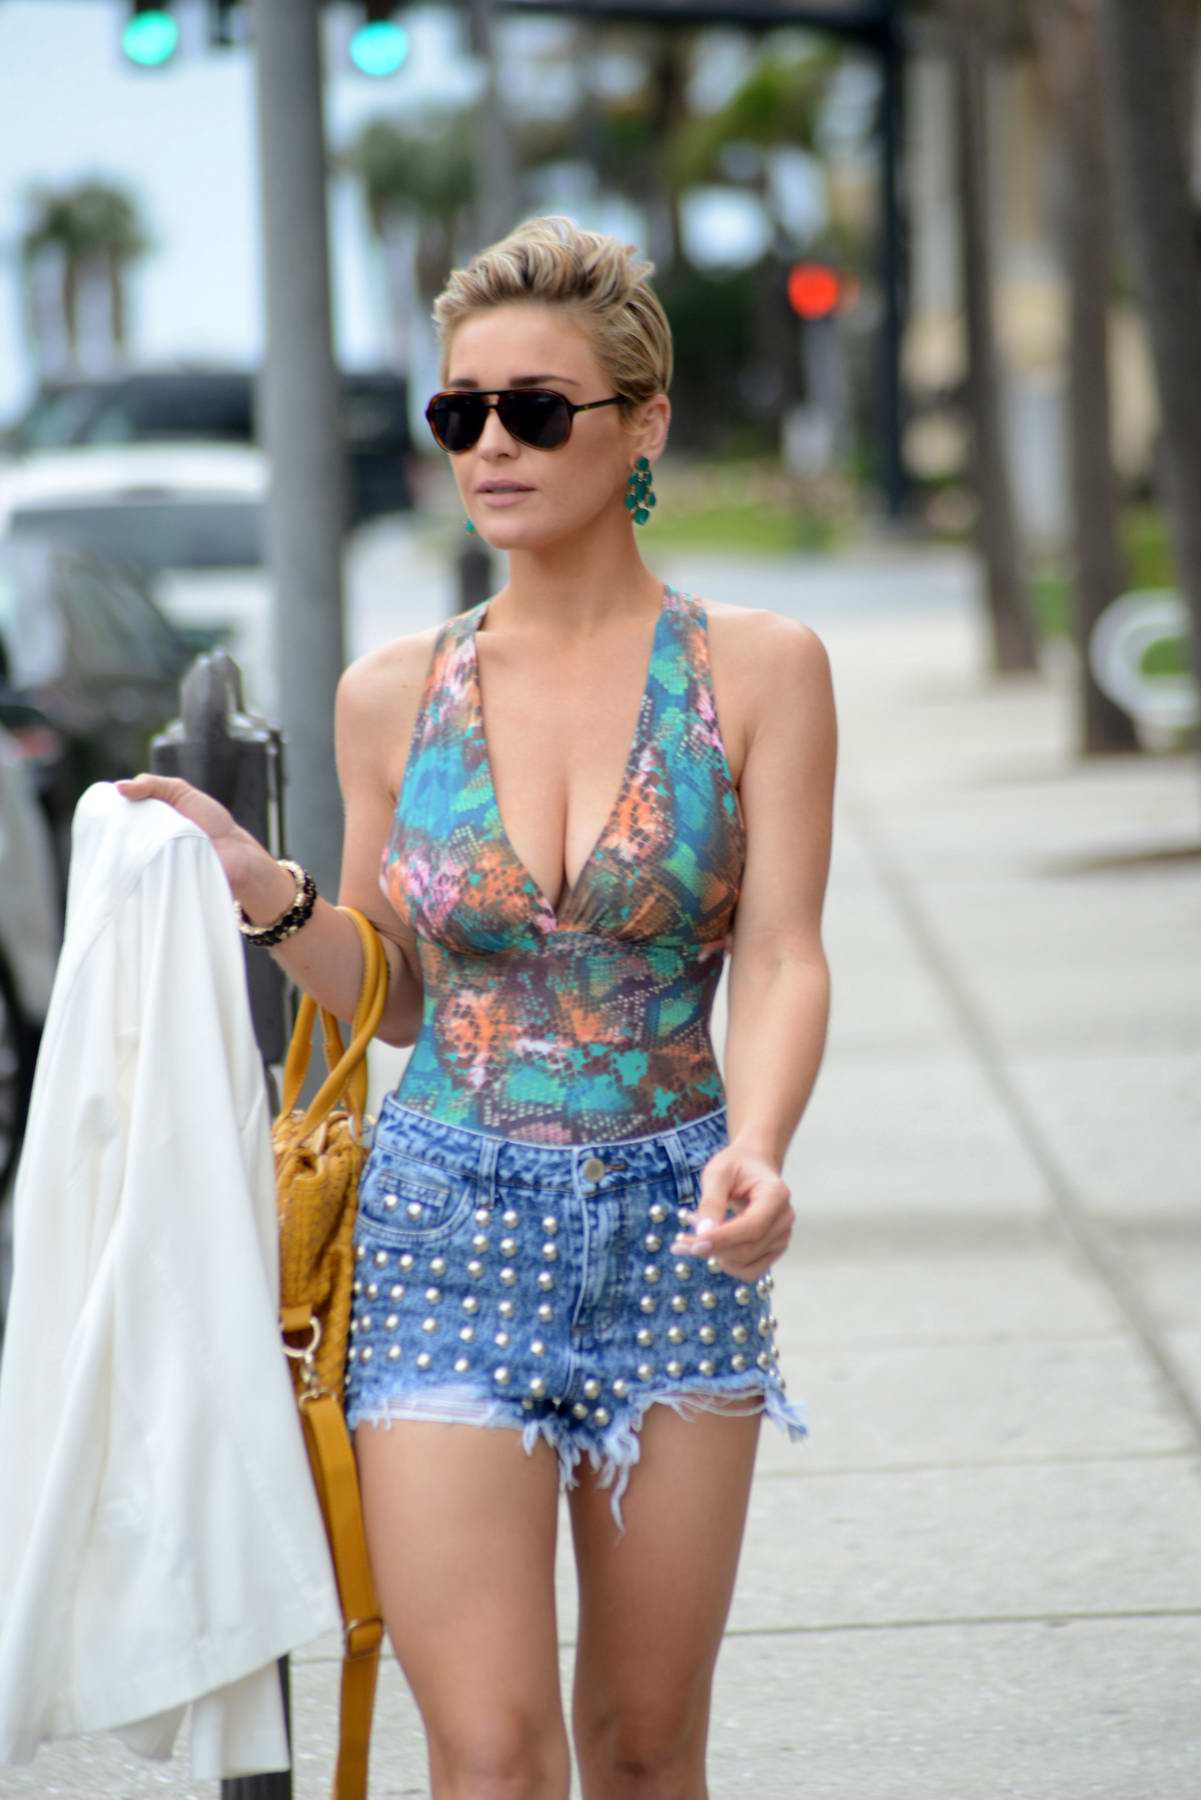 Lauren Hubbard stepped out in a colorful top and daisy dukes while shopping in Miami, Florida